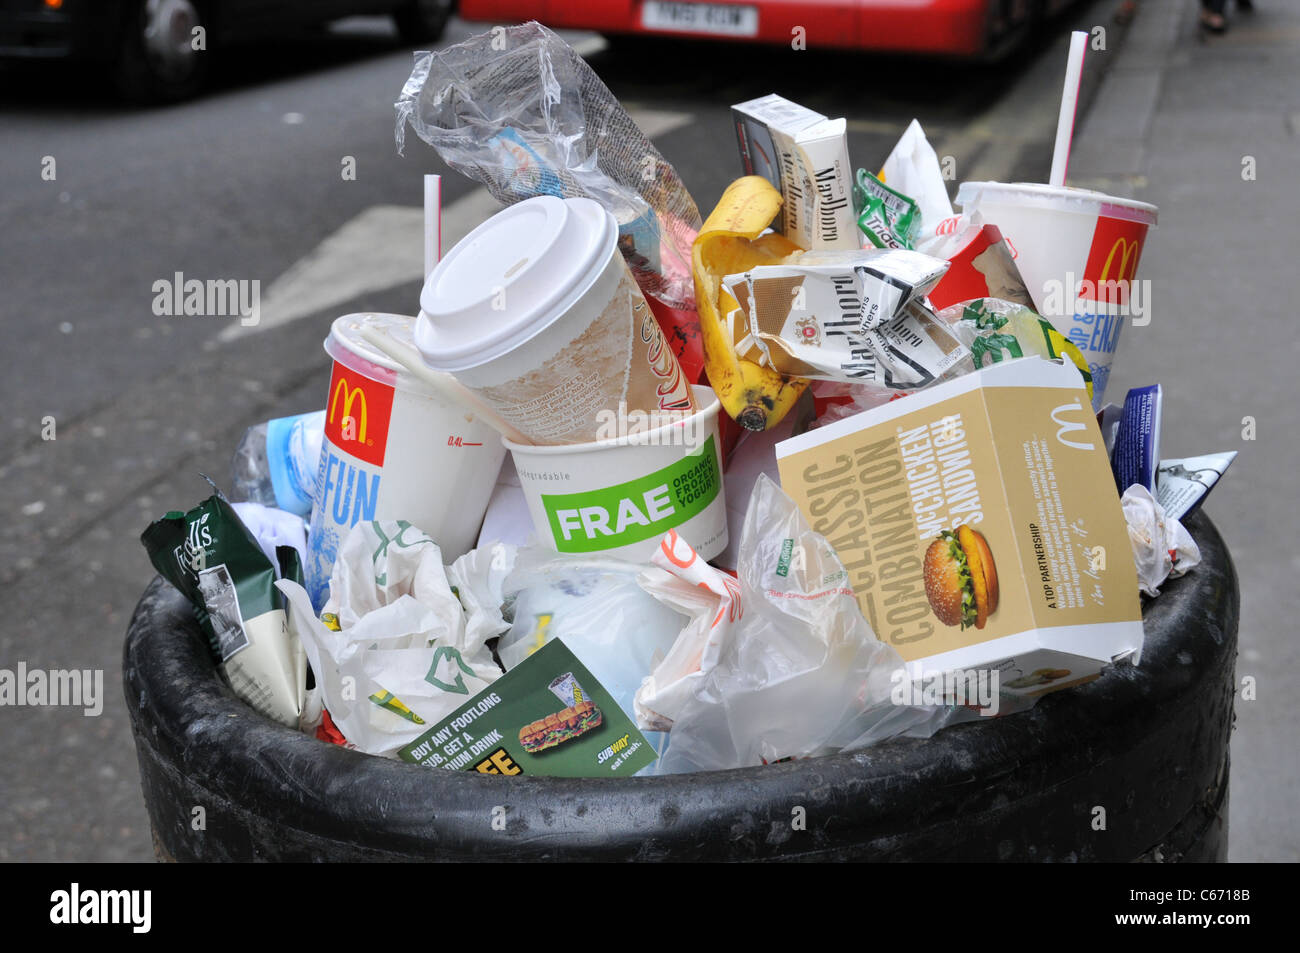 Plastic Wrap Car >> fast food litter packaging wrappers Macdonald's burgers litter bin Stock Photo: 38263355 - Alamy